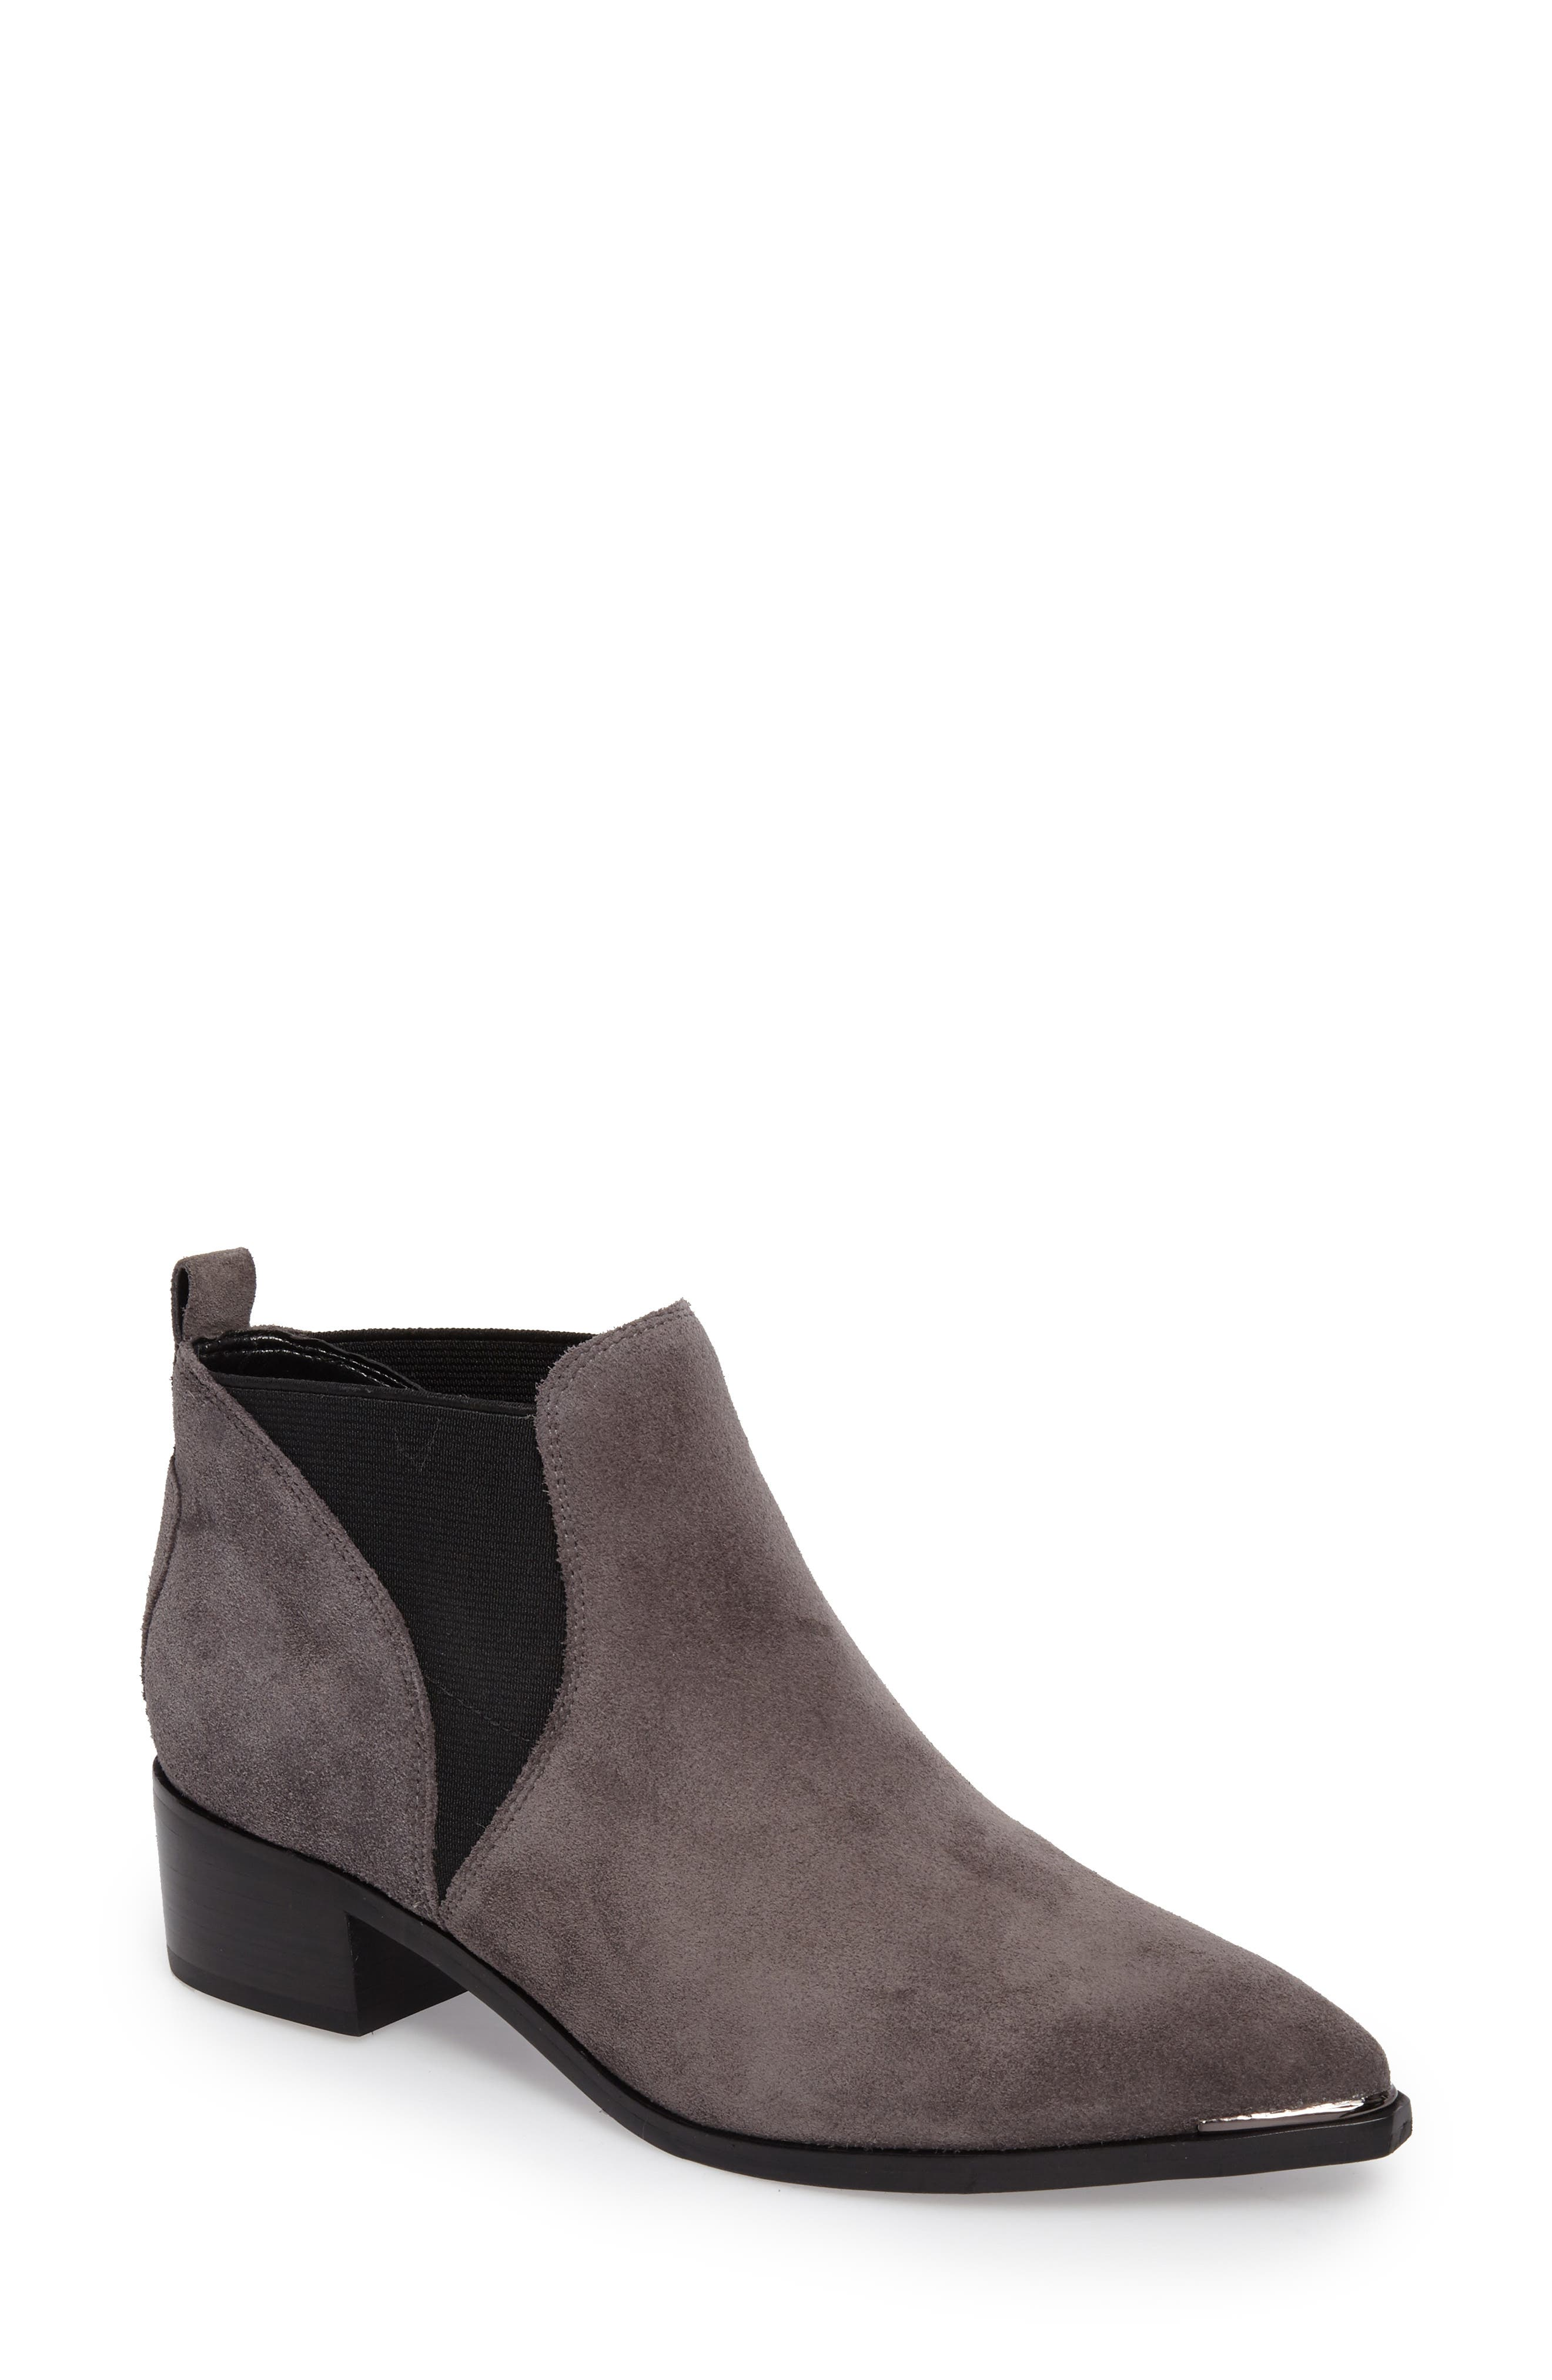 Yellin Pointy Toe Chelsea Boot,                             Main thumbnail 1, color,                             Dark Grey Suede